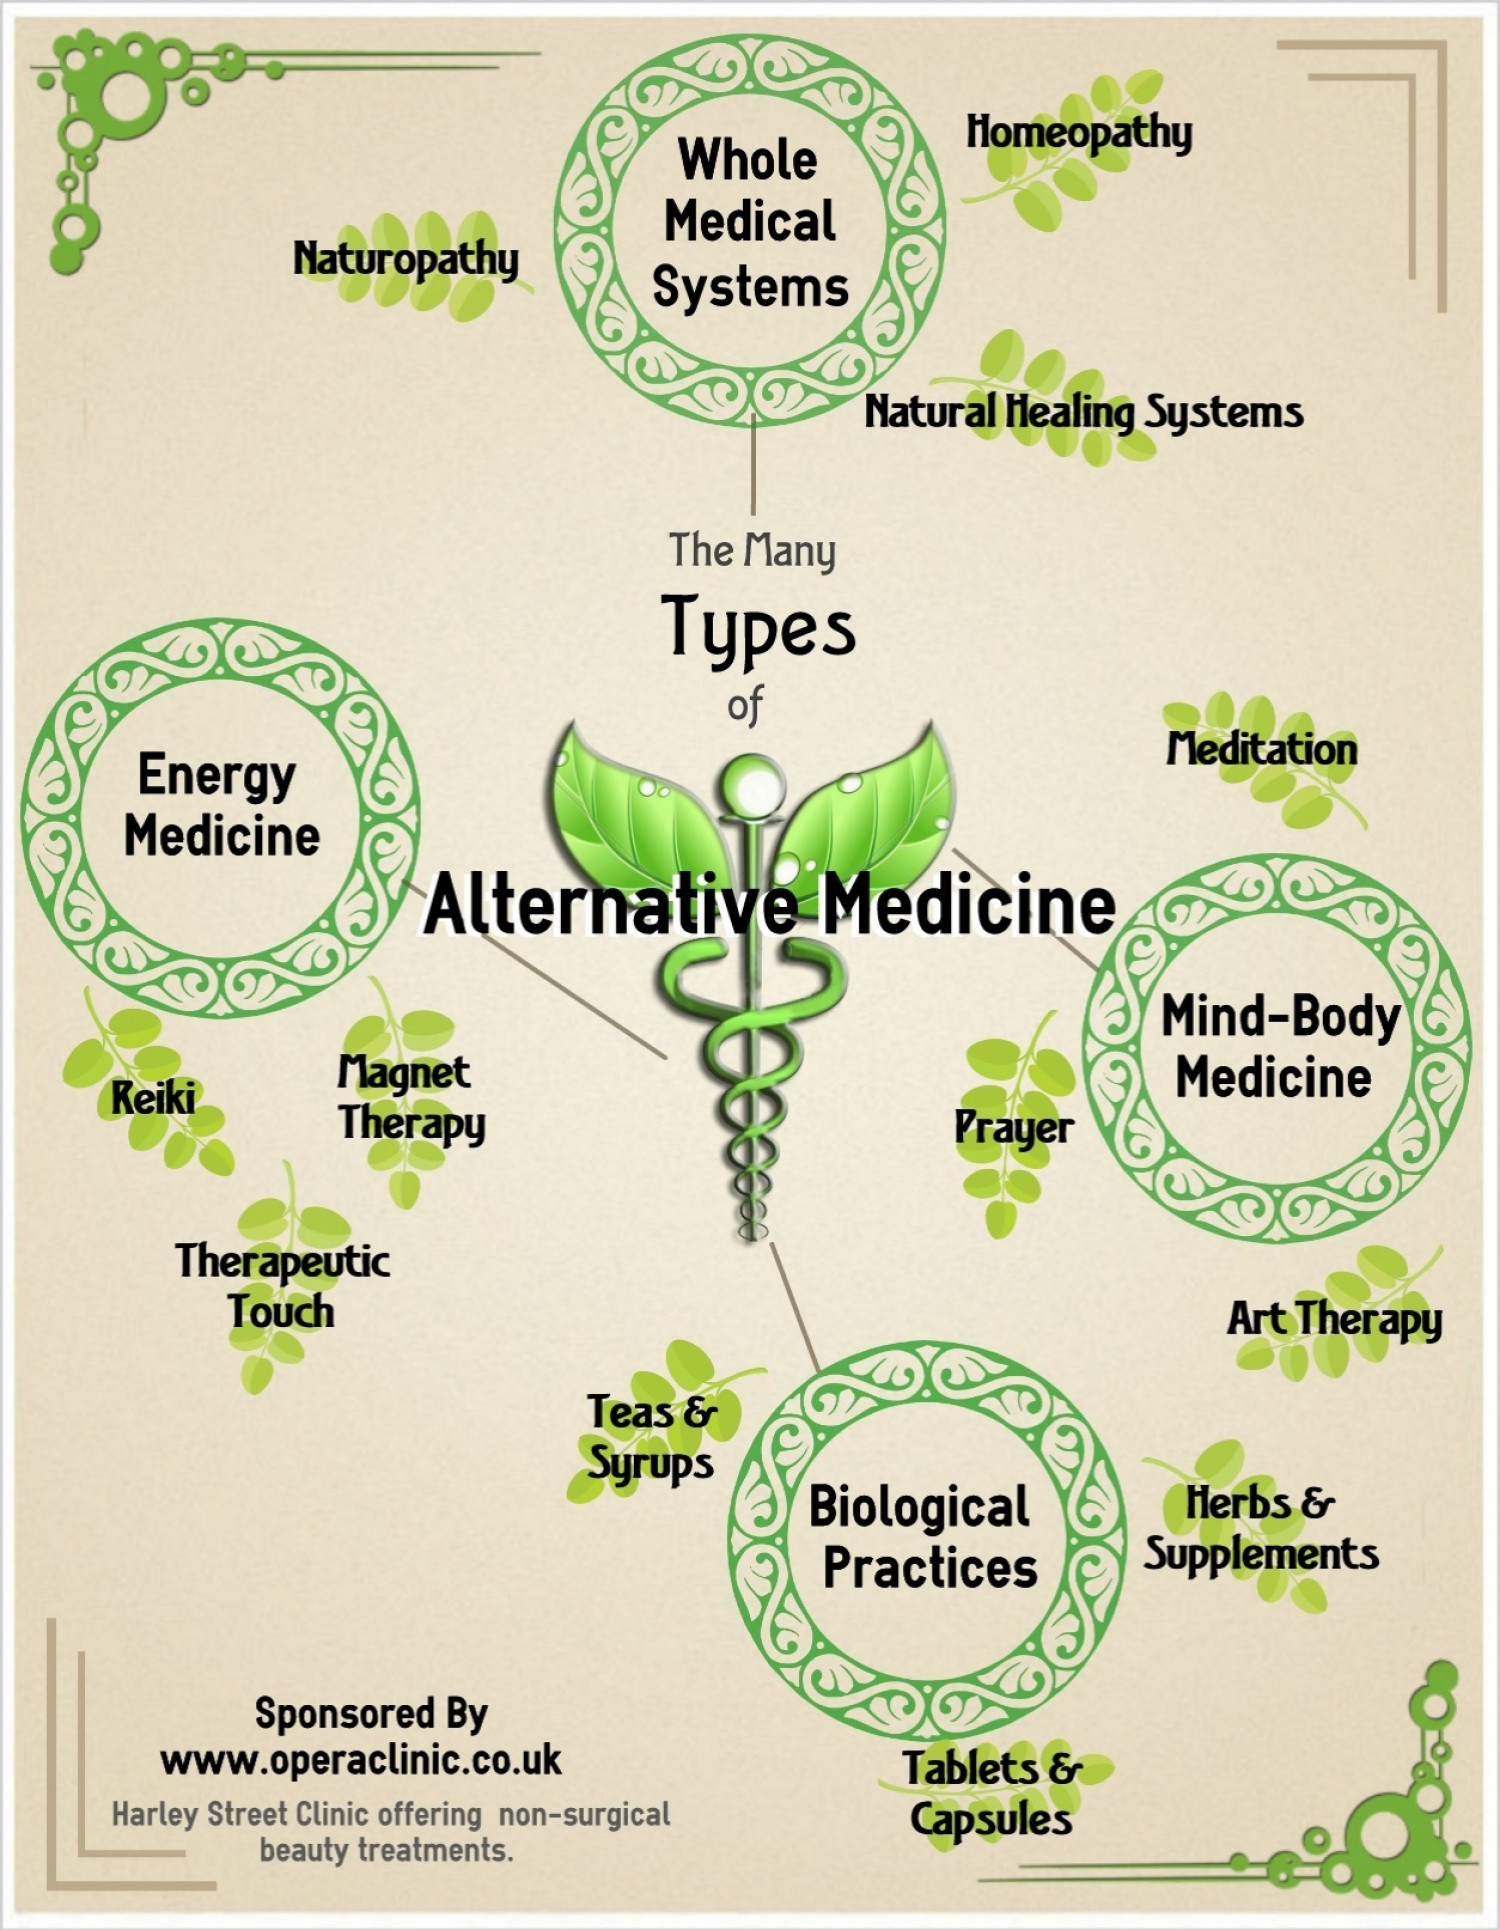 Alternative Medicine Alternative Medicine Types. Computer Systems Manager Buying A Mutual Fund. How To Check Verizon Esn Pre Approval Mortage. Copy Machine Companies Vip Super Bowl Tickets. Microsoft Scheduling Software. Yahoo Web Hosting Coupon Codes. Magic Quadrant For Data Integration Tools. Scott Middle School Lincoln Ne. Christian Online College Cat Scan Tech Schools